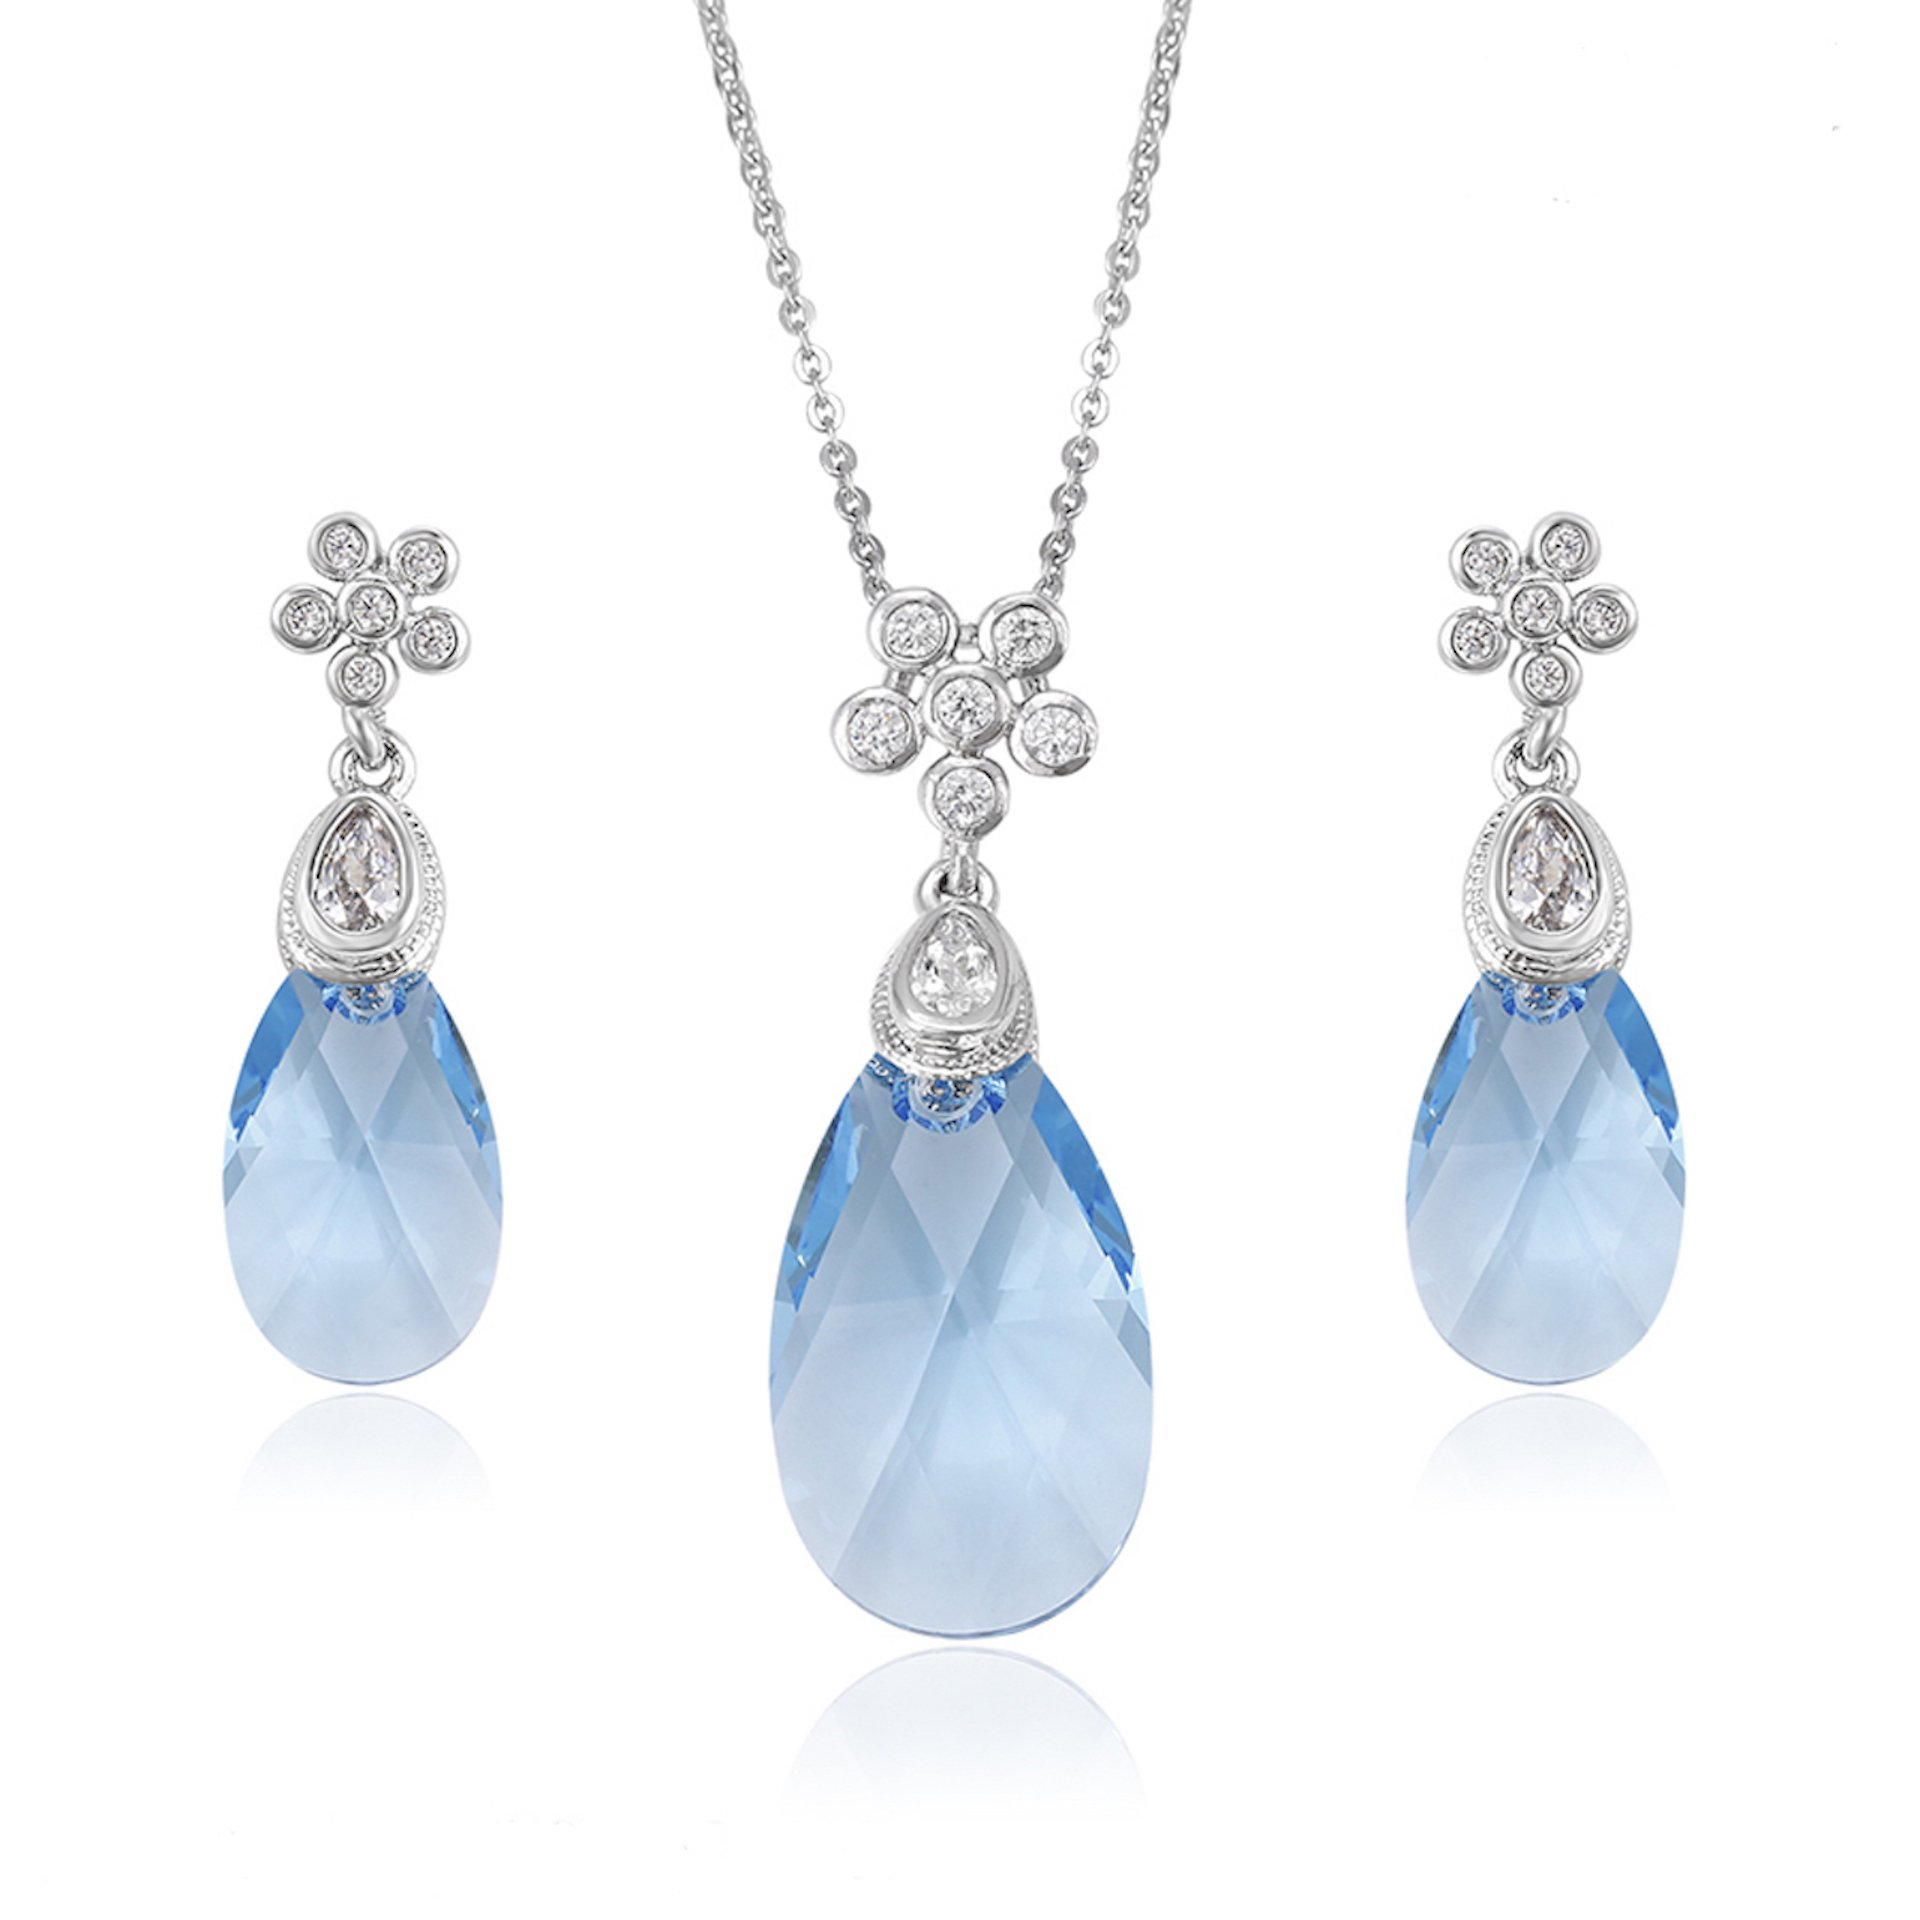 Barbara Giles Crystals from Swarovski 'Raindrop-falling-off-A-Flower' Jewellery Set - Office Jewellery or Party Jewellery - Blue - Excellent as a Gift Idea